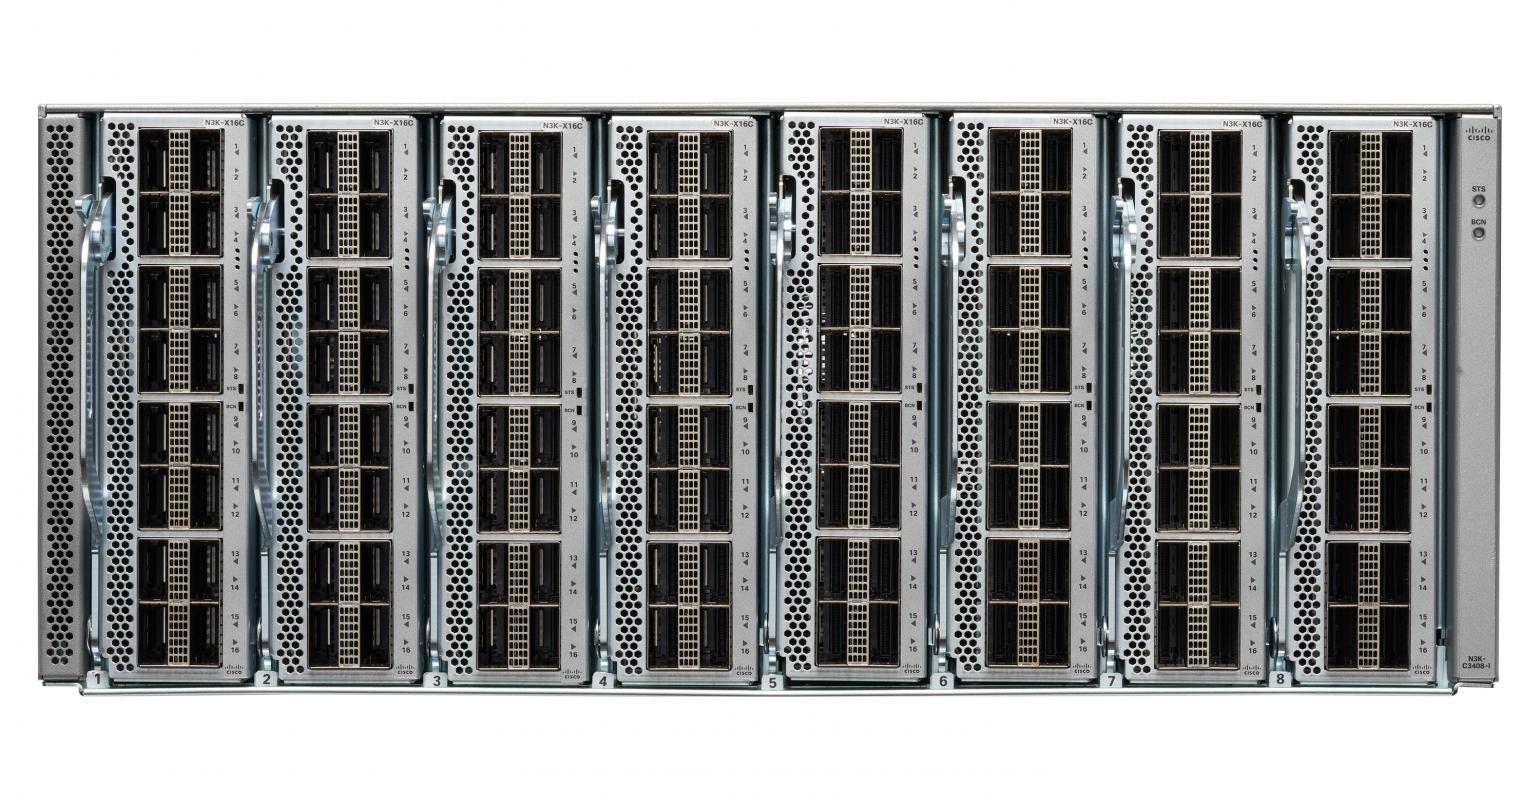 Nuovi Cisco switch 400G